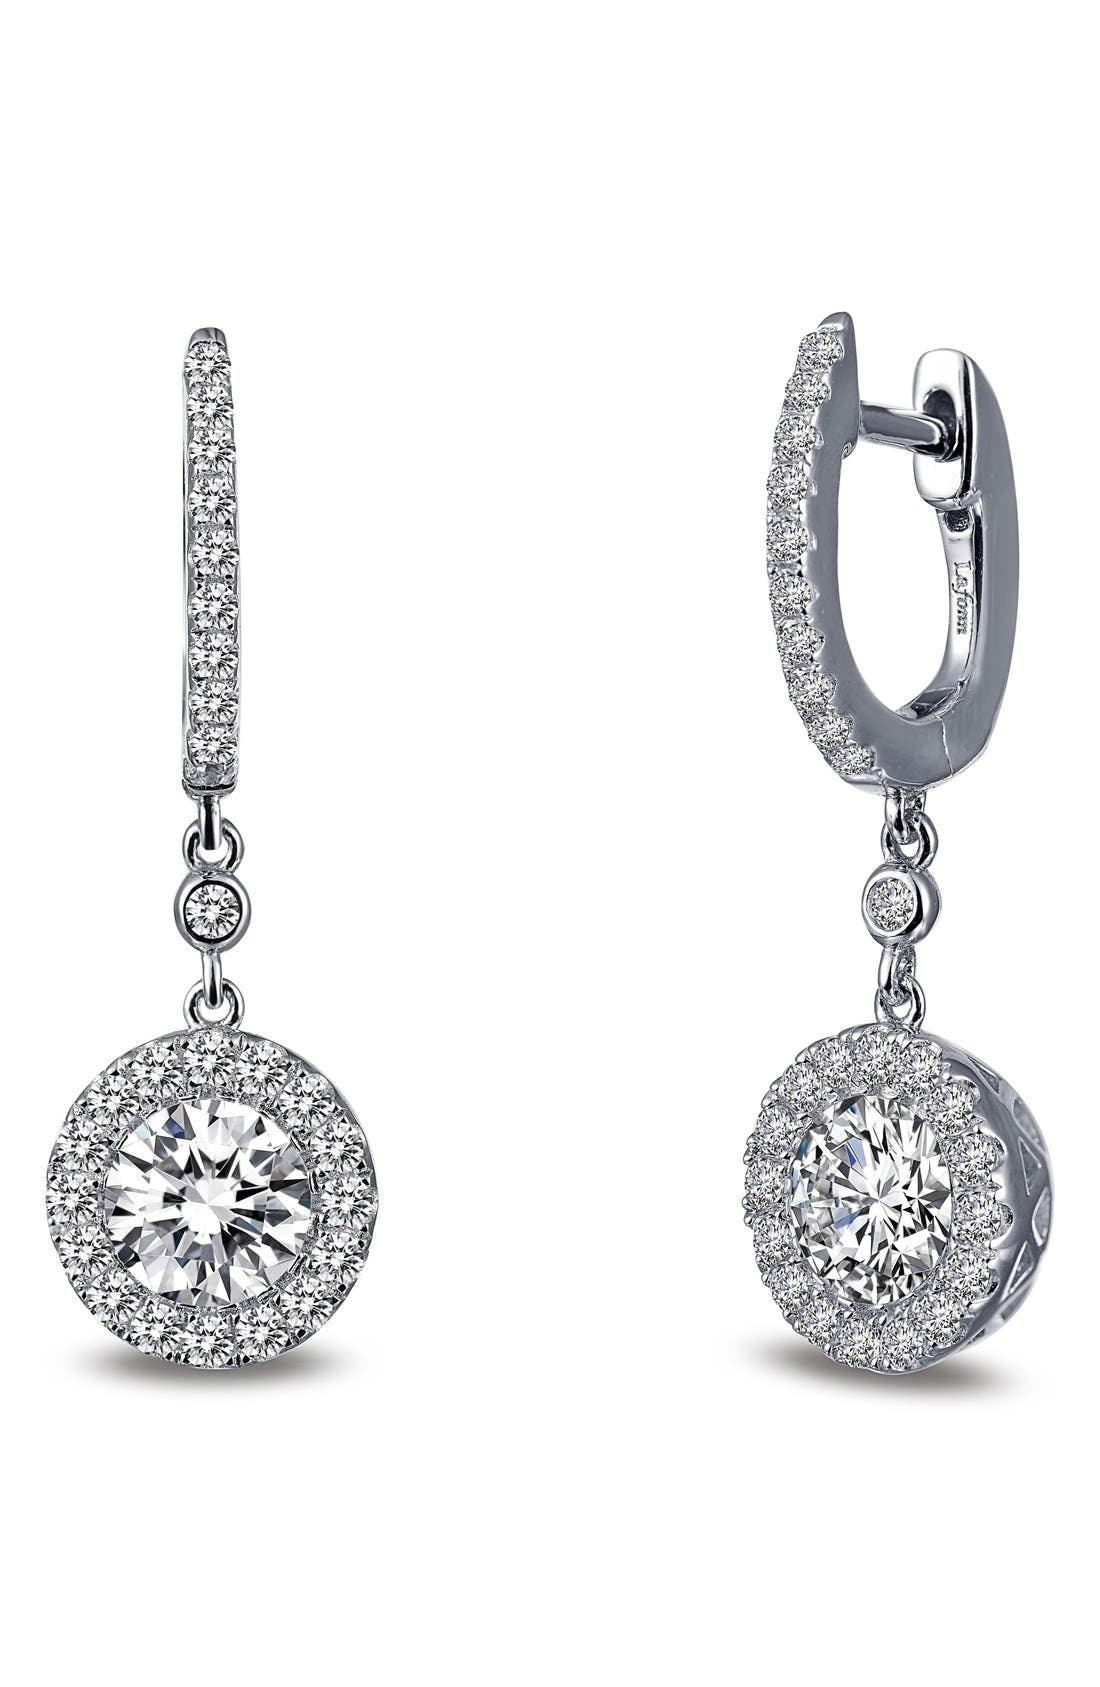 Classic Halo Drop Earrings,                             Main thumbnail 1, color,                             040